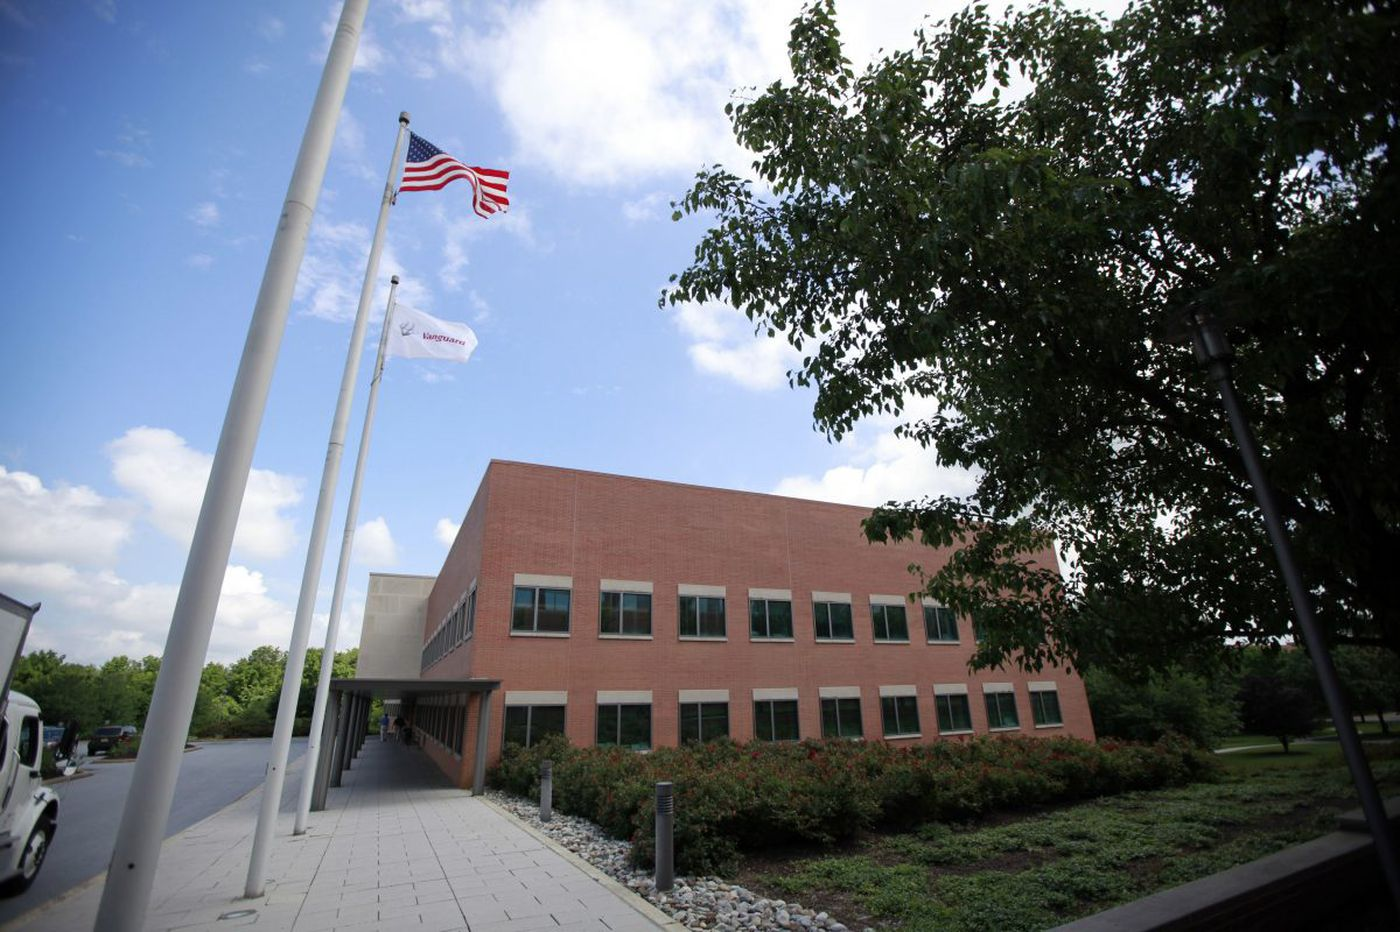 Liberty Property Trust aims to sell all suburban office holdings, including Vanguard space in Malvern